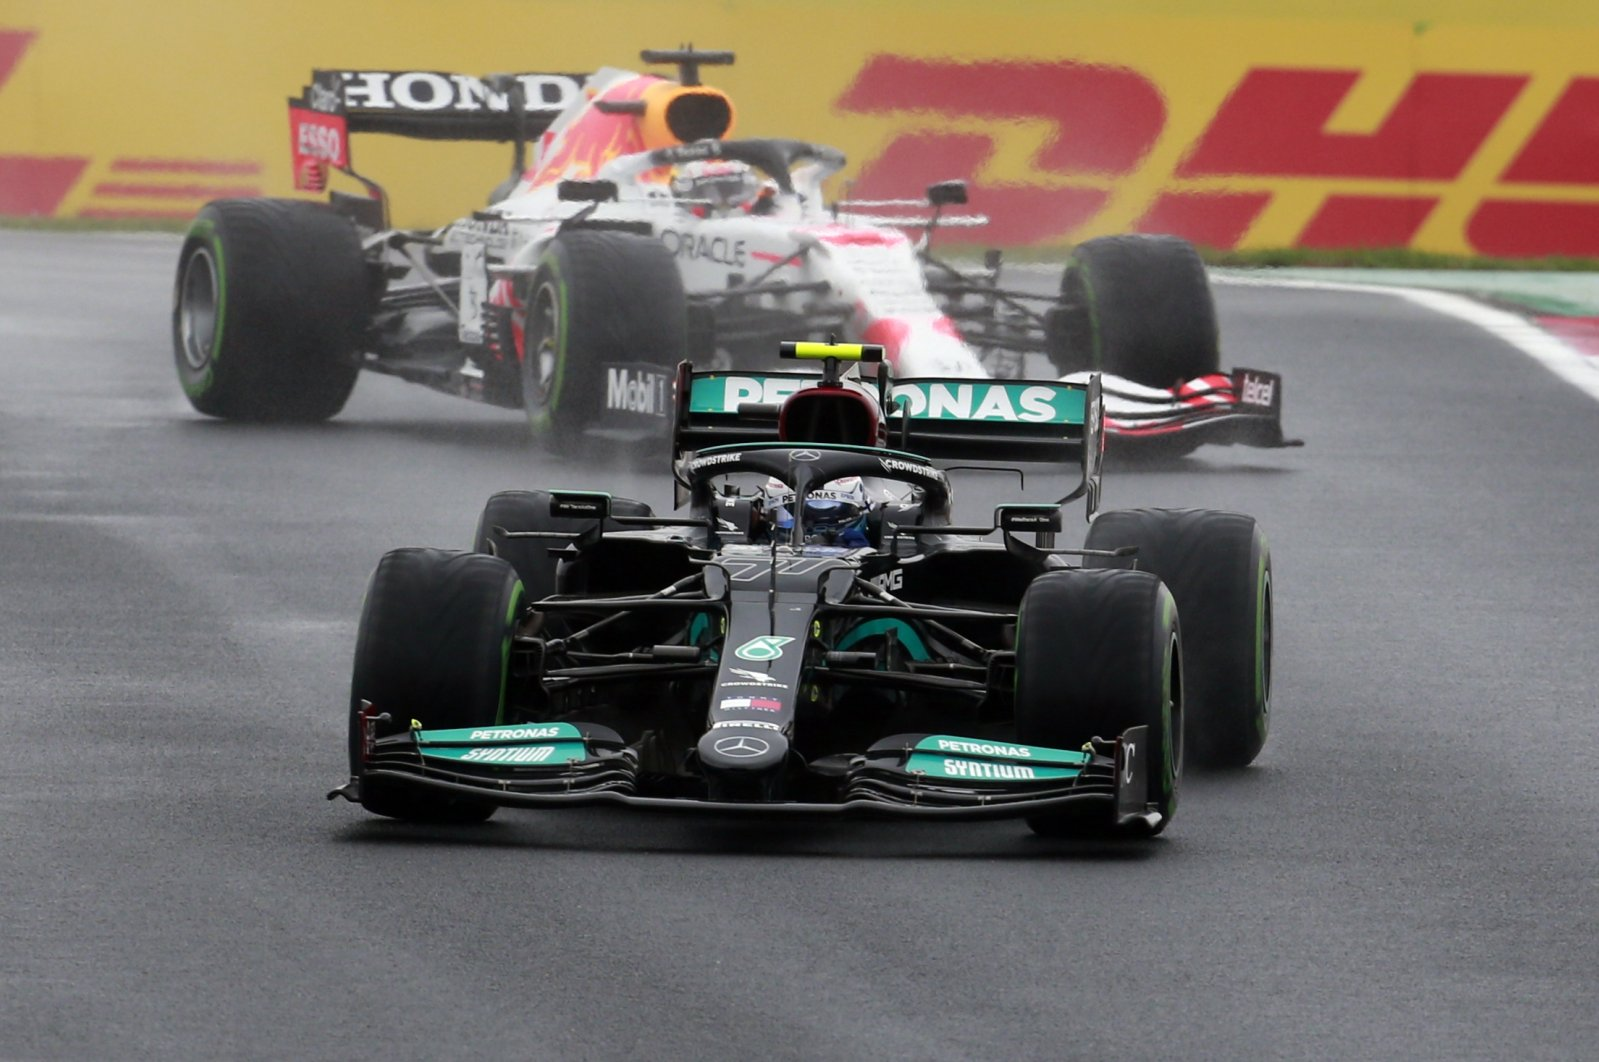 Mercedes driver Valtteri Bottas of Finland steers his car followed by Red Bull driver Max Verstappen of the Netherlands during the Turkish Formula One Grand Prix at the Intercity Istanbul Park circuit in Istanbul, Turkey, Sunday, Oct. 10, 2021. (AP Photo)